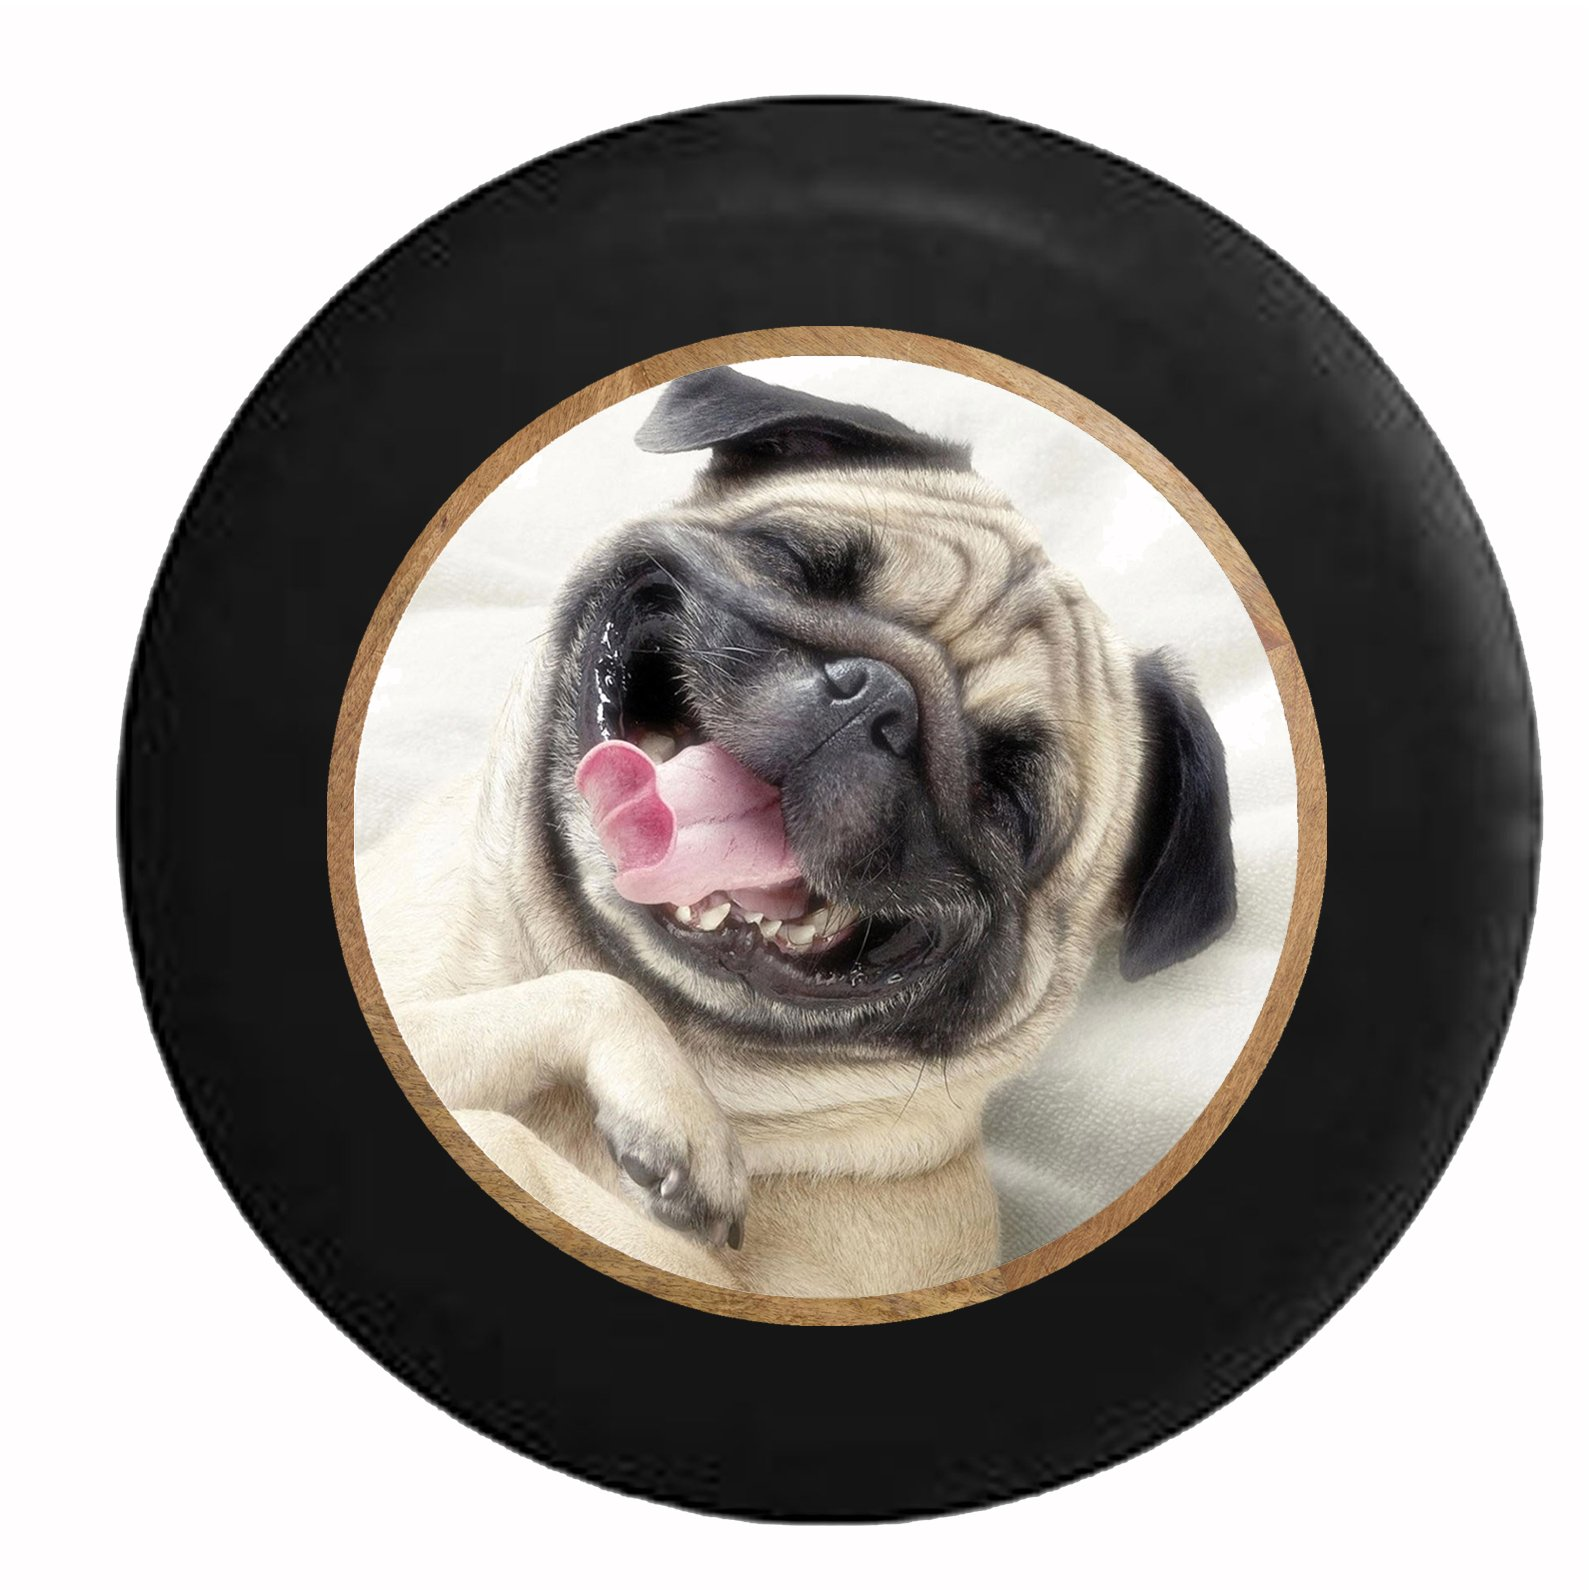 Full Color Smiling Pug Dog Cute Pet Spare Tire Cover fits SUV Camper RV Accessories Black 26-27.5 in by Pike Outdoors